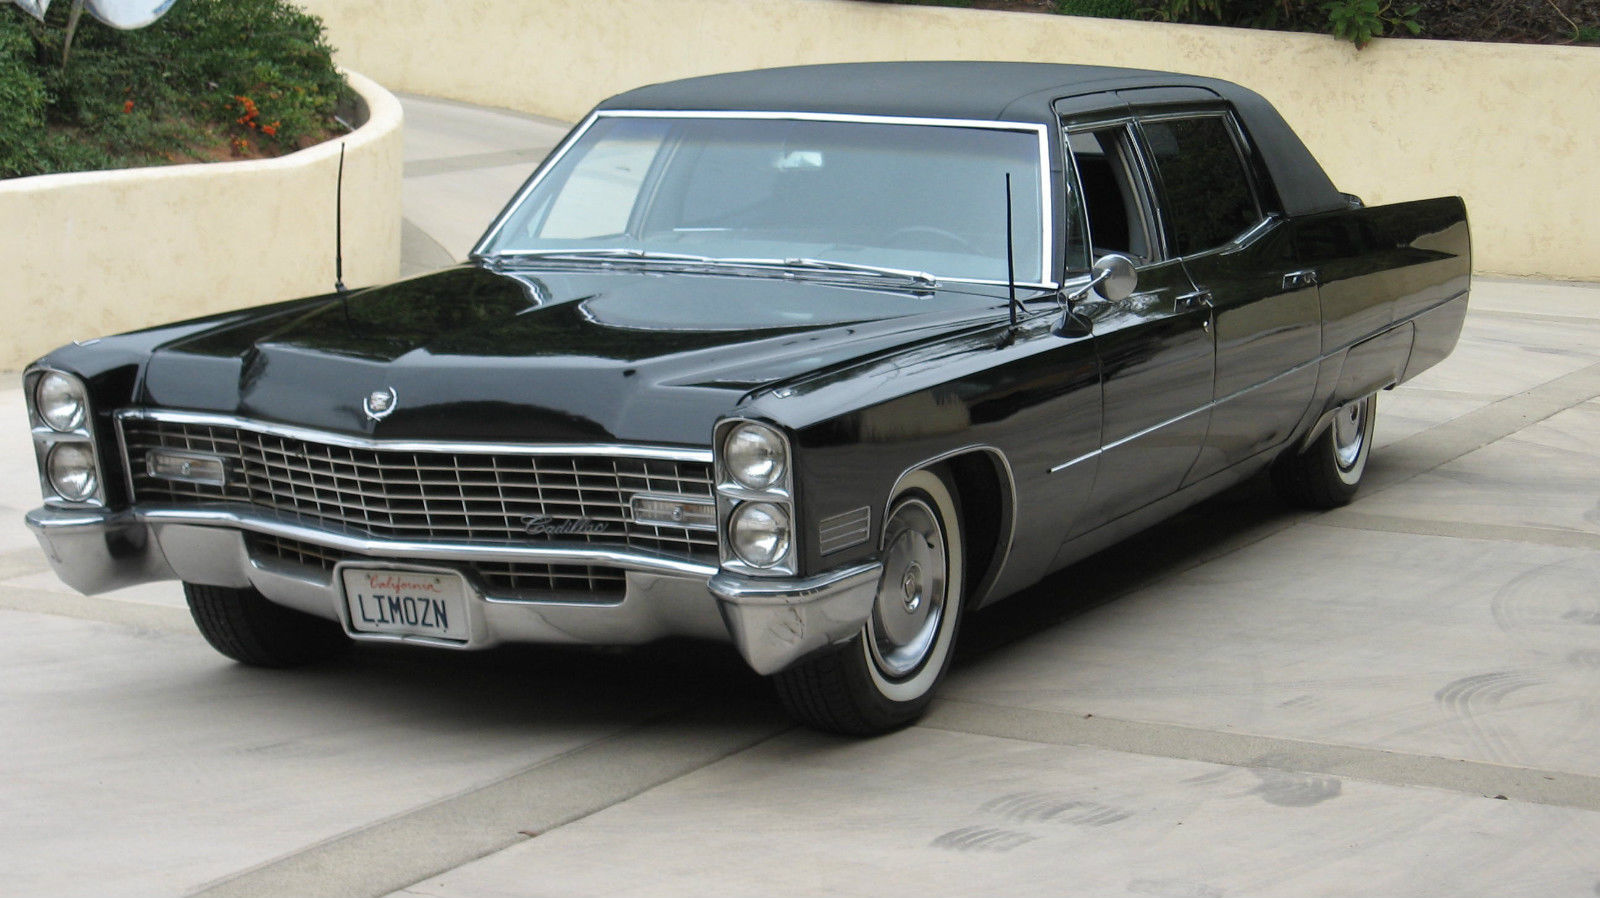 Limo For Sale >> 1967 Cadillac Fleetwood 75 Limousine 112,000 Miles Runs and Drives Great - Classic Cadillac ...